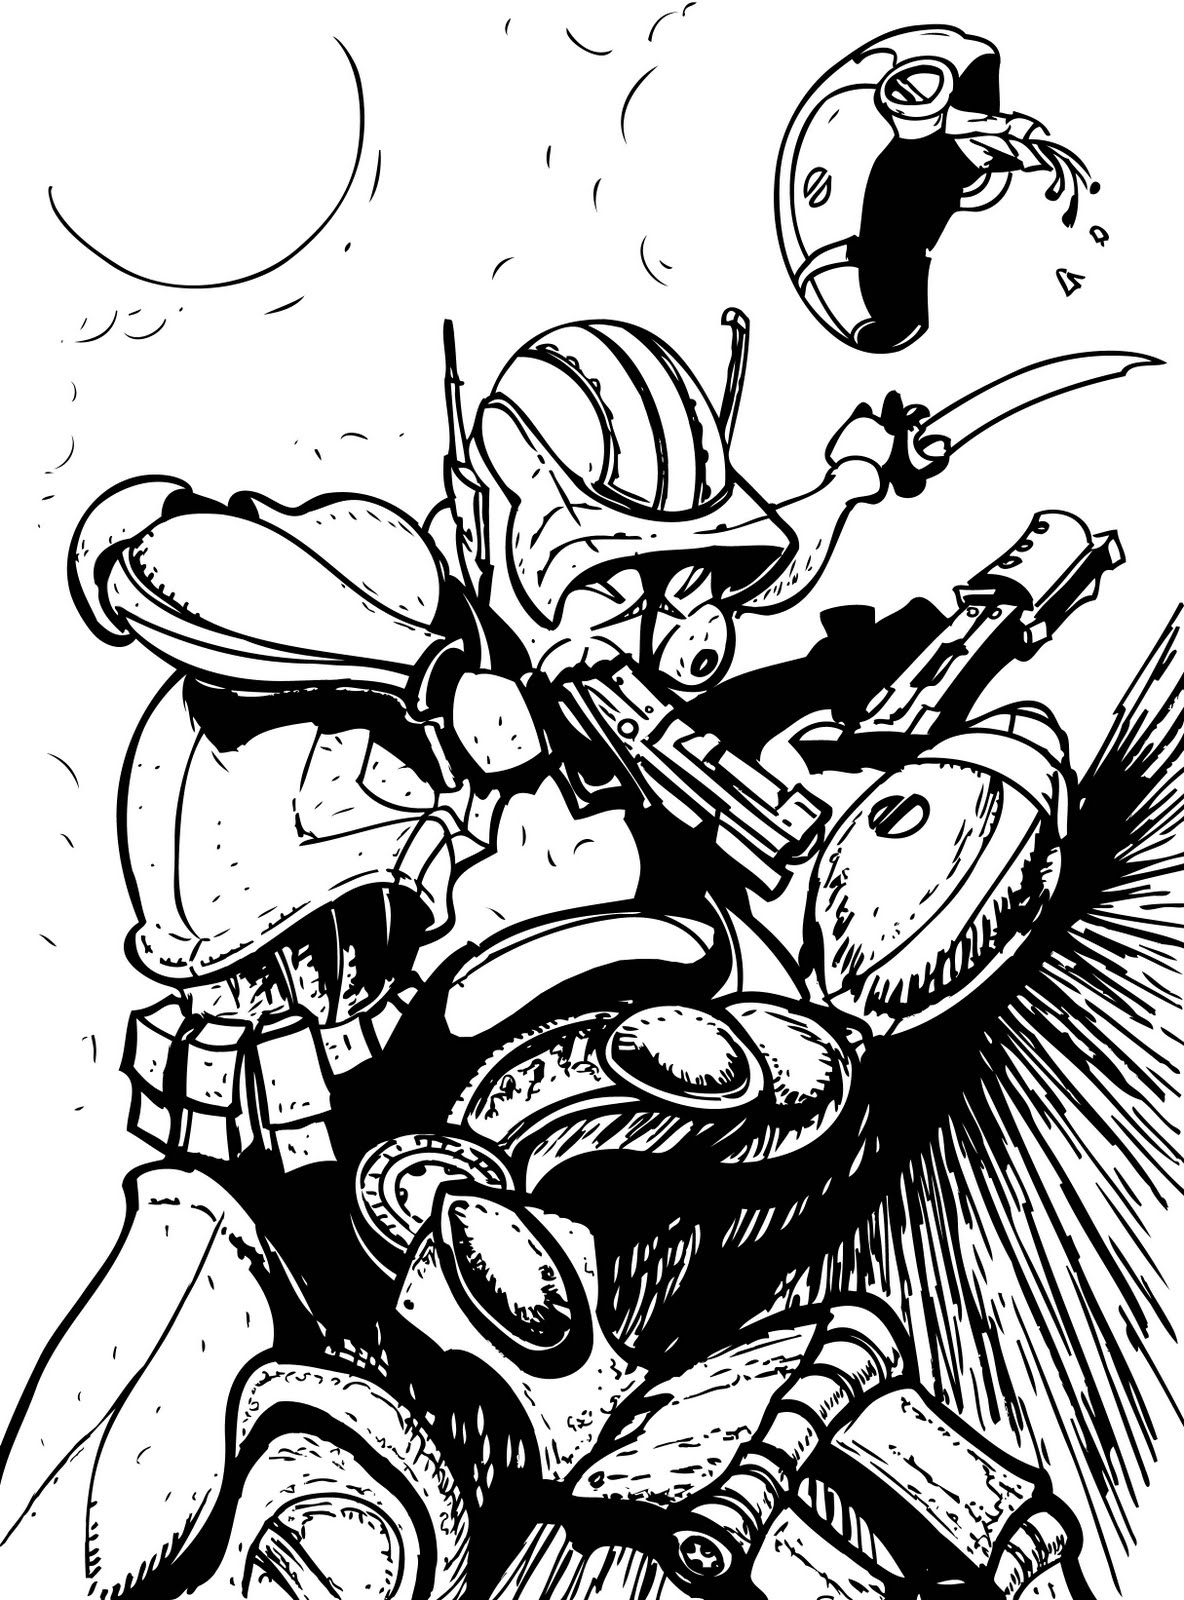 commander cody coloring pages - photo#21